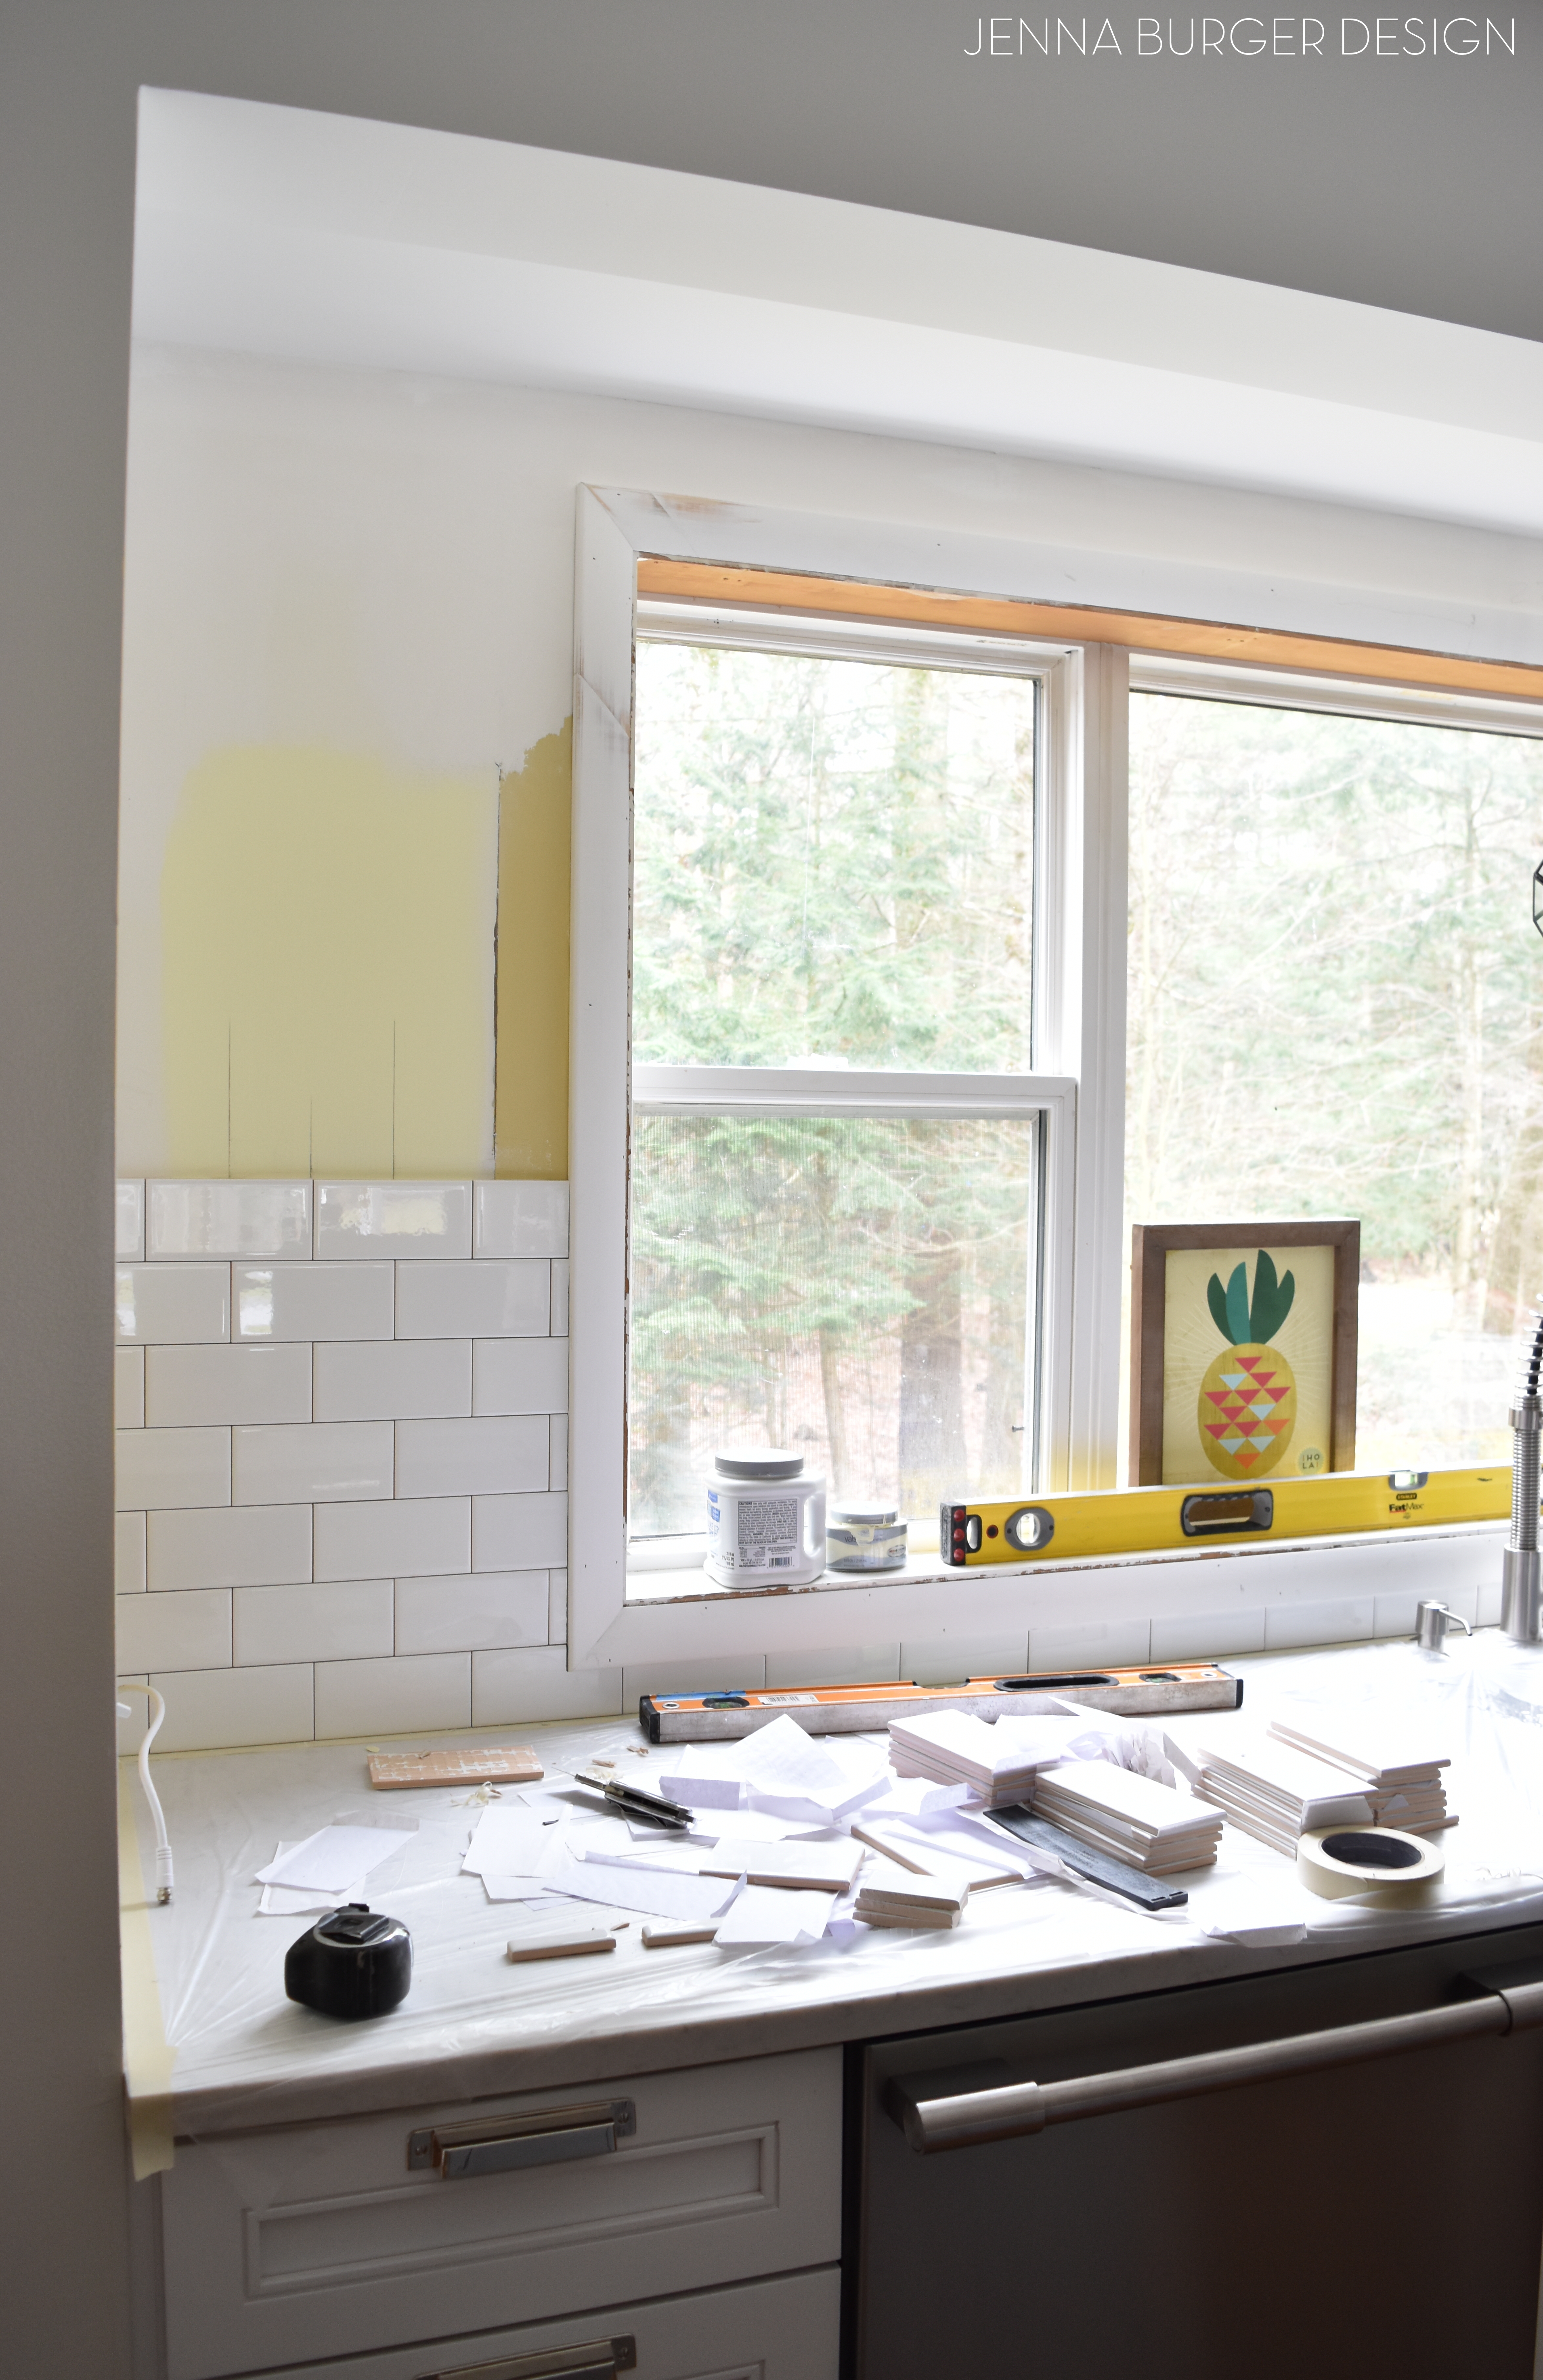 Superbe How Do You Choose The Perfect Kitchen Tile Backsplash? There Are So Many  Decisions.